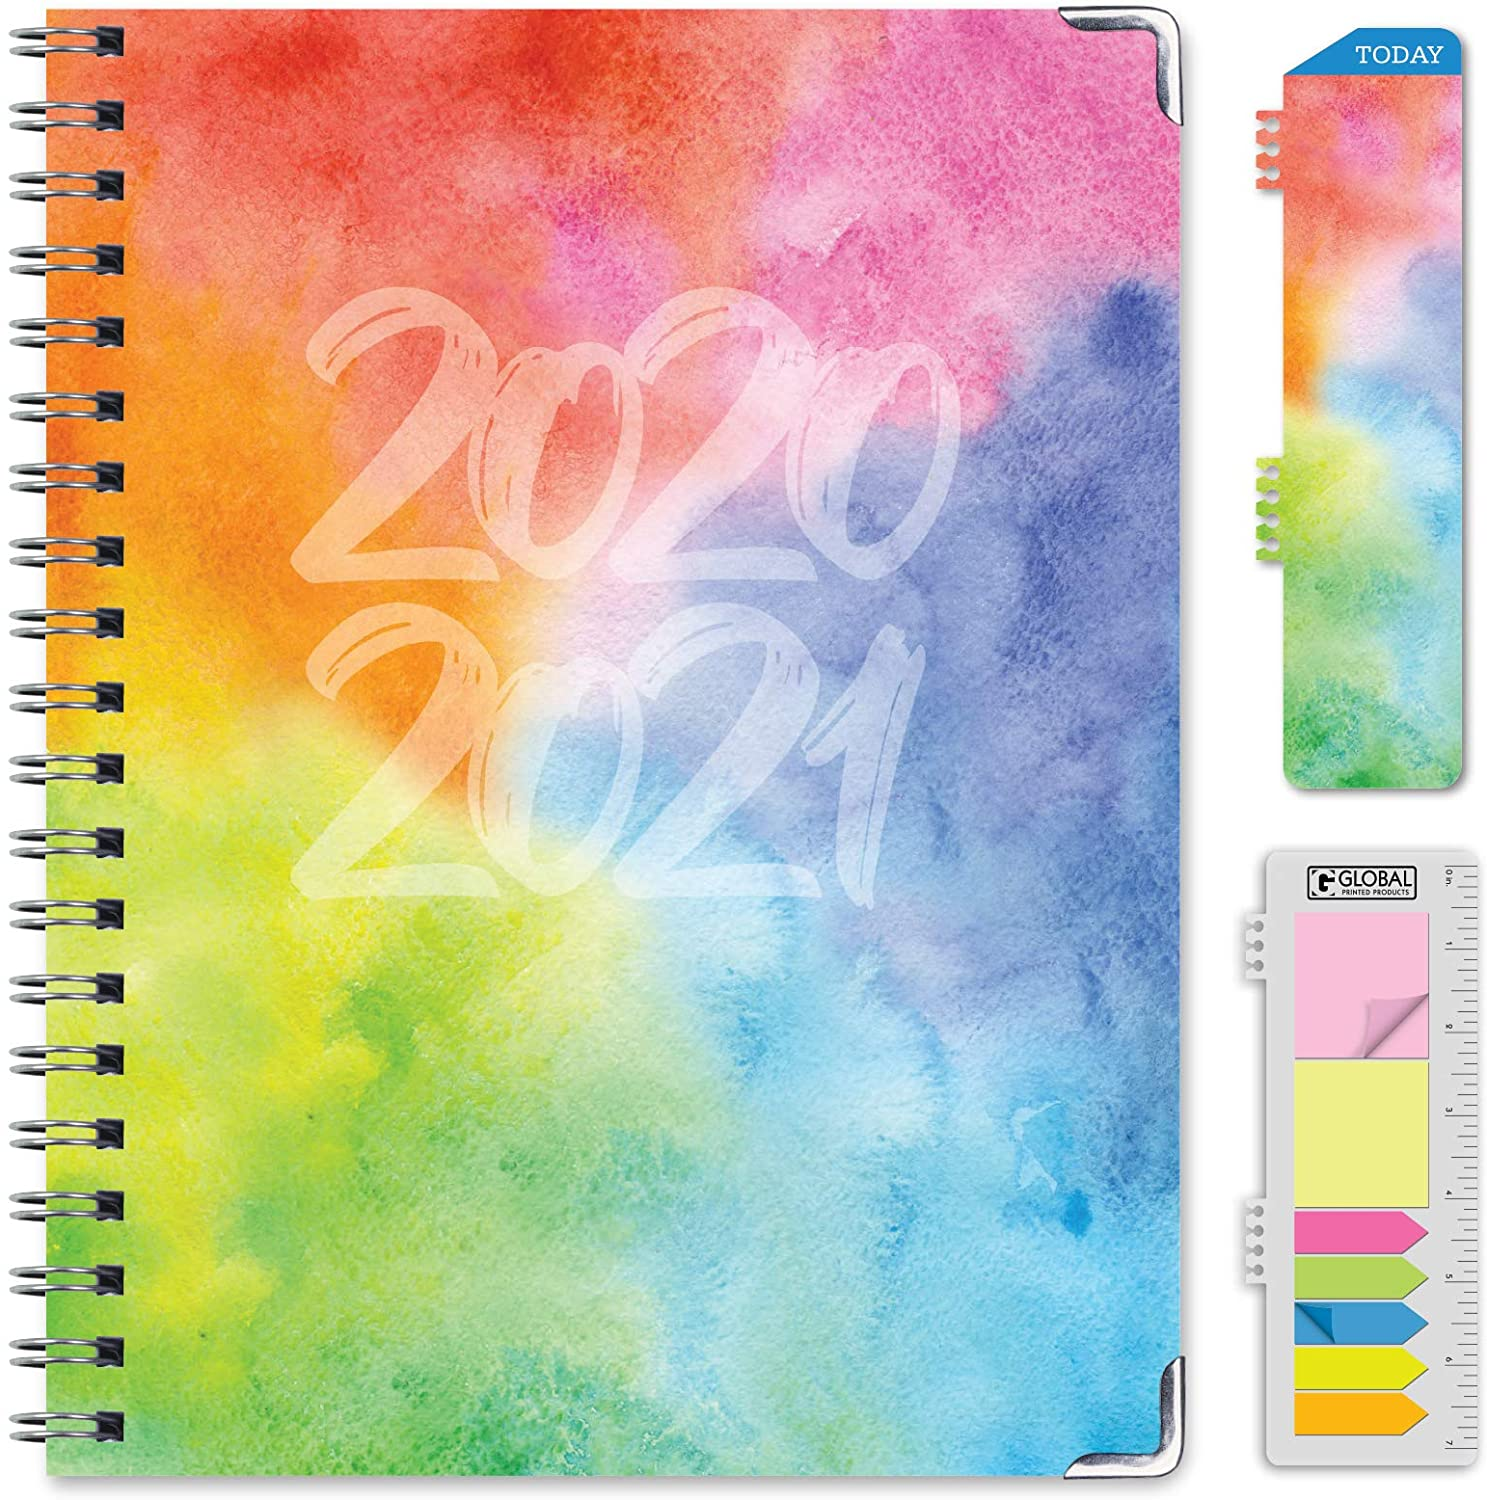 HARDCOVER Academic Year 2020-2021 Planner: (June 2020 Through July 2021) 8.5x11 Daily Weekly Monthly Planner Yearly Agenda. Bonus Bookmark, Pocket Folder and Sticky Note Set (Rainbow Watercolors)